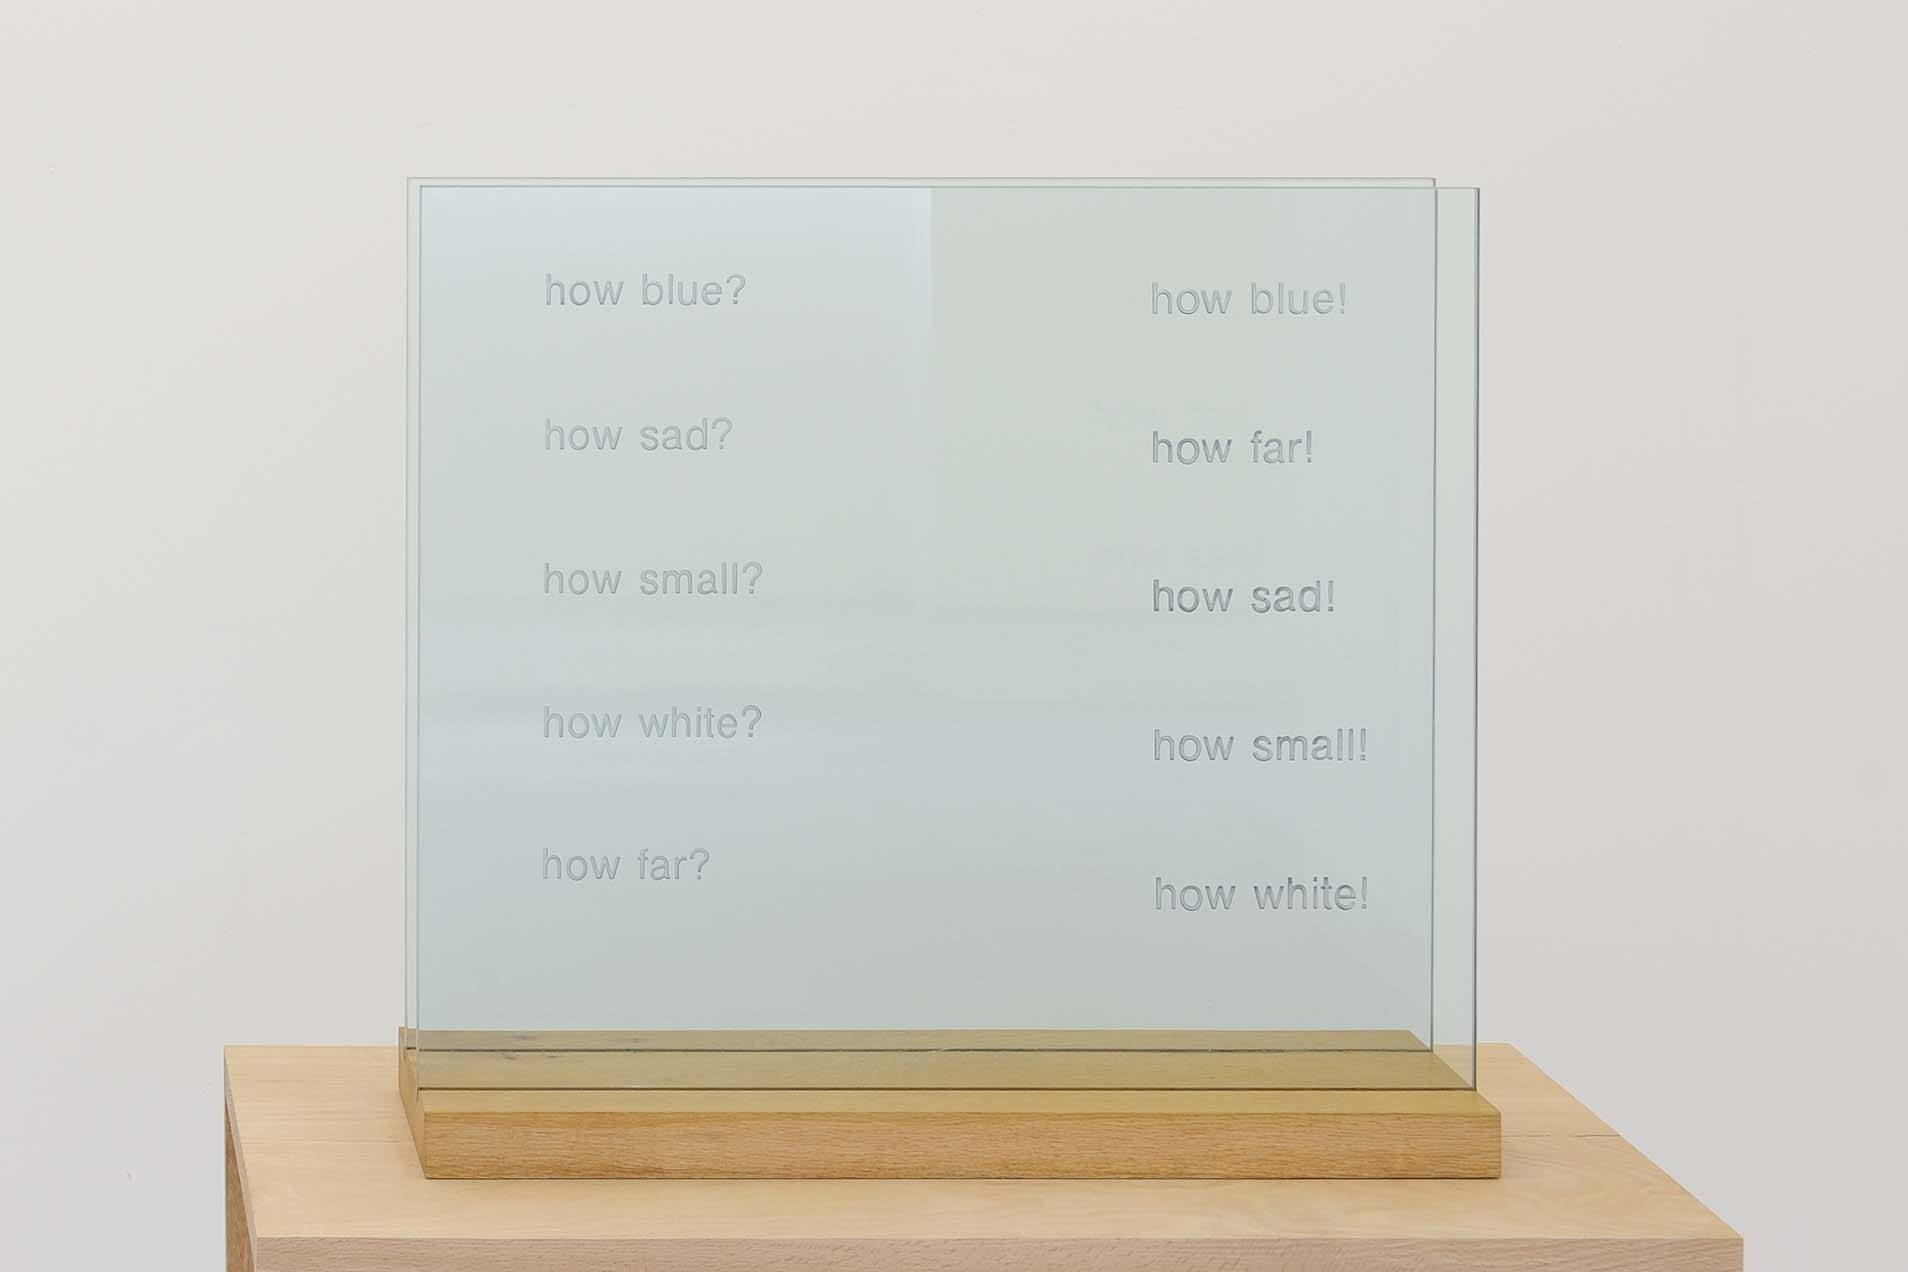 How Blue, 1990, Engraved glass, wooden stand, 61 x 55.5 x 17.6 cm, Ed. 3